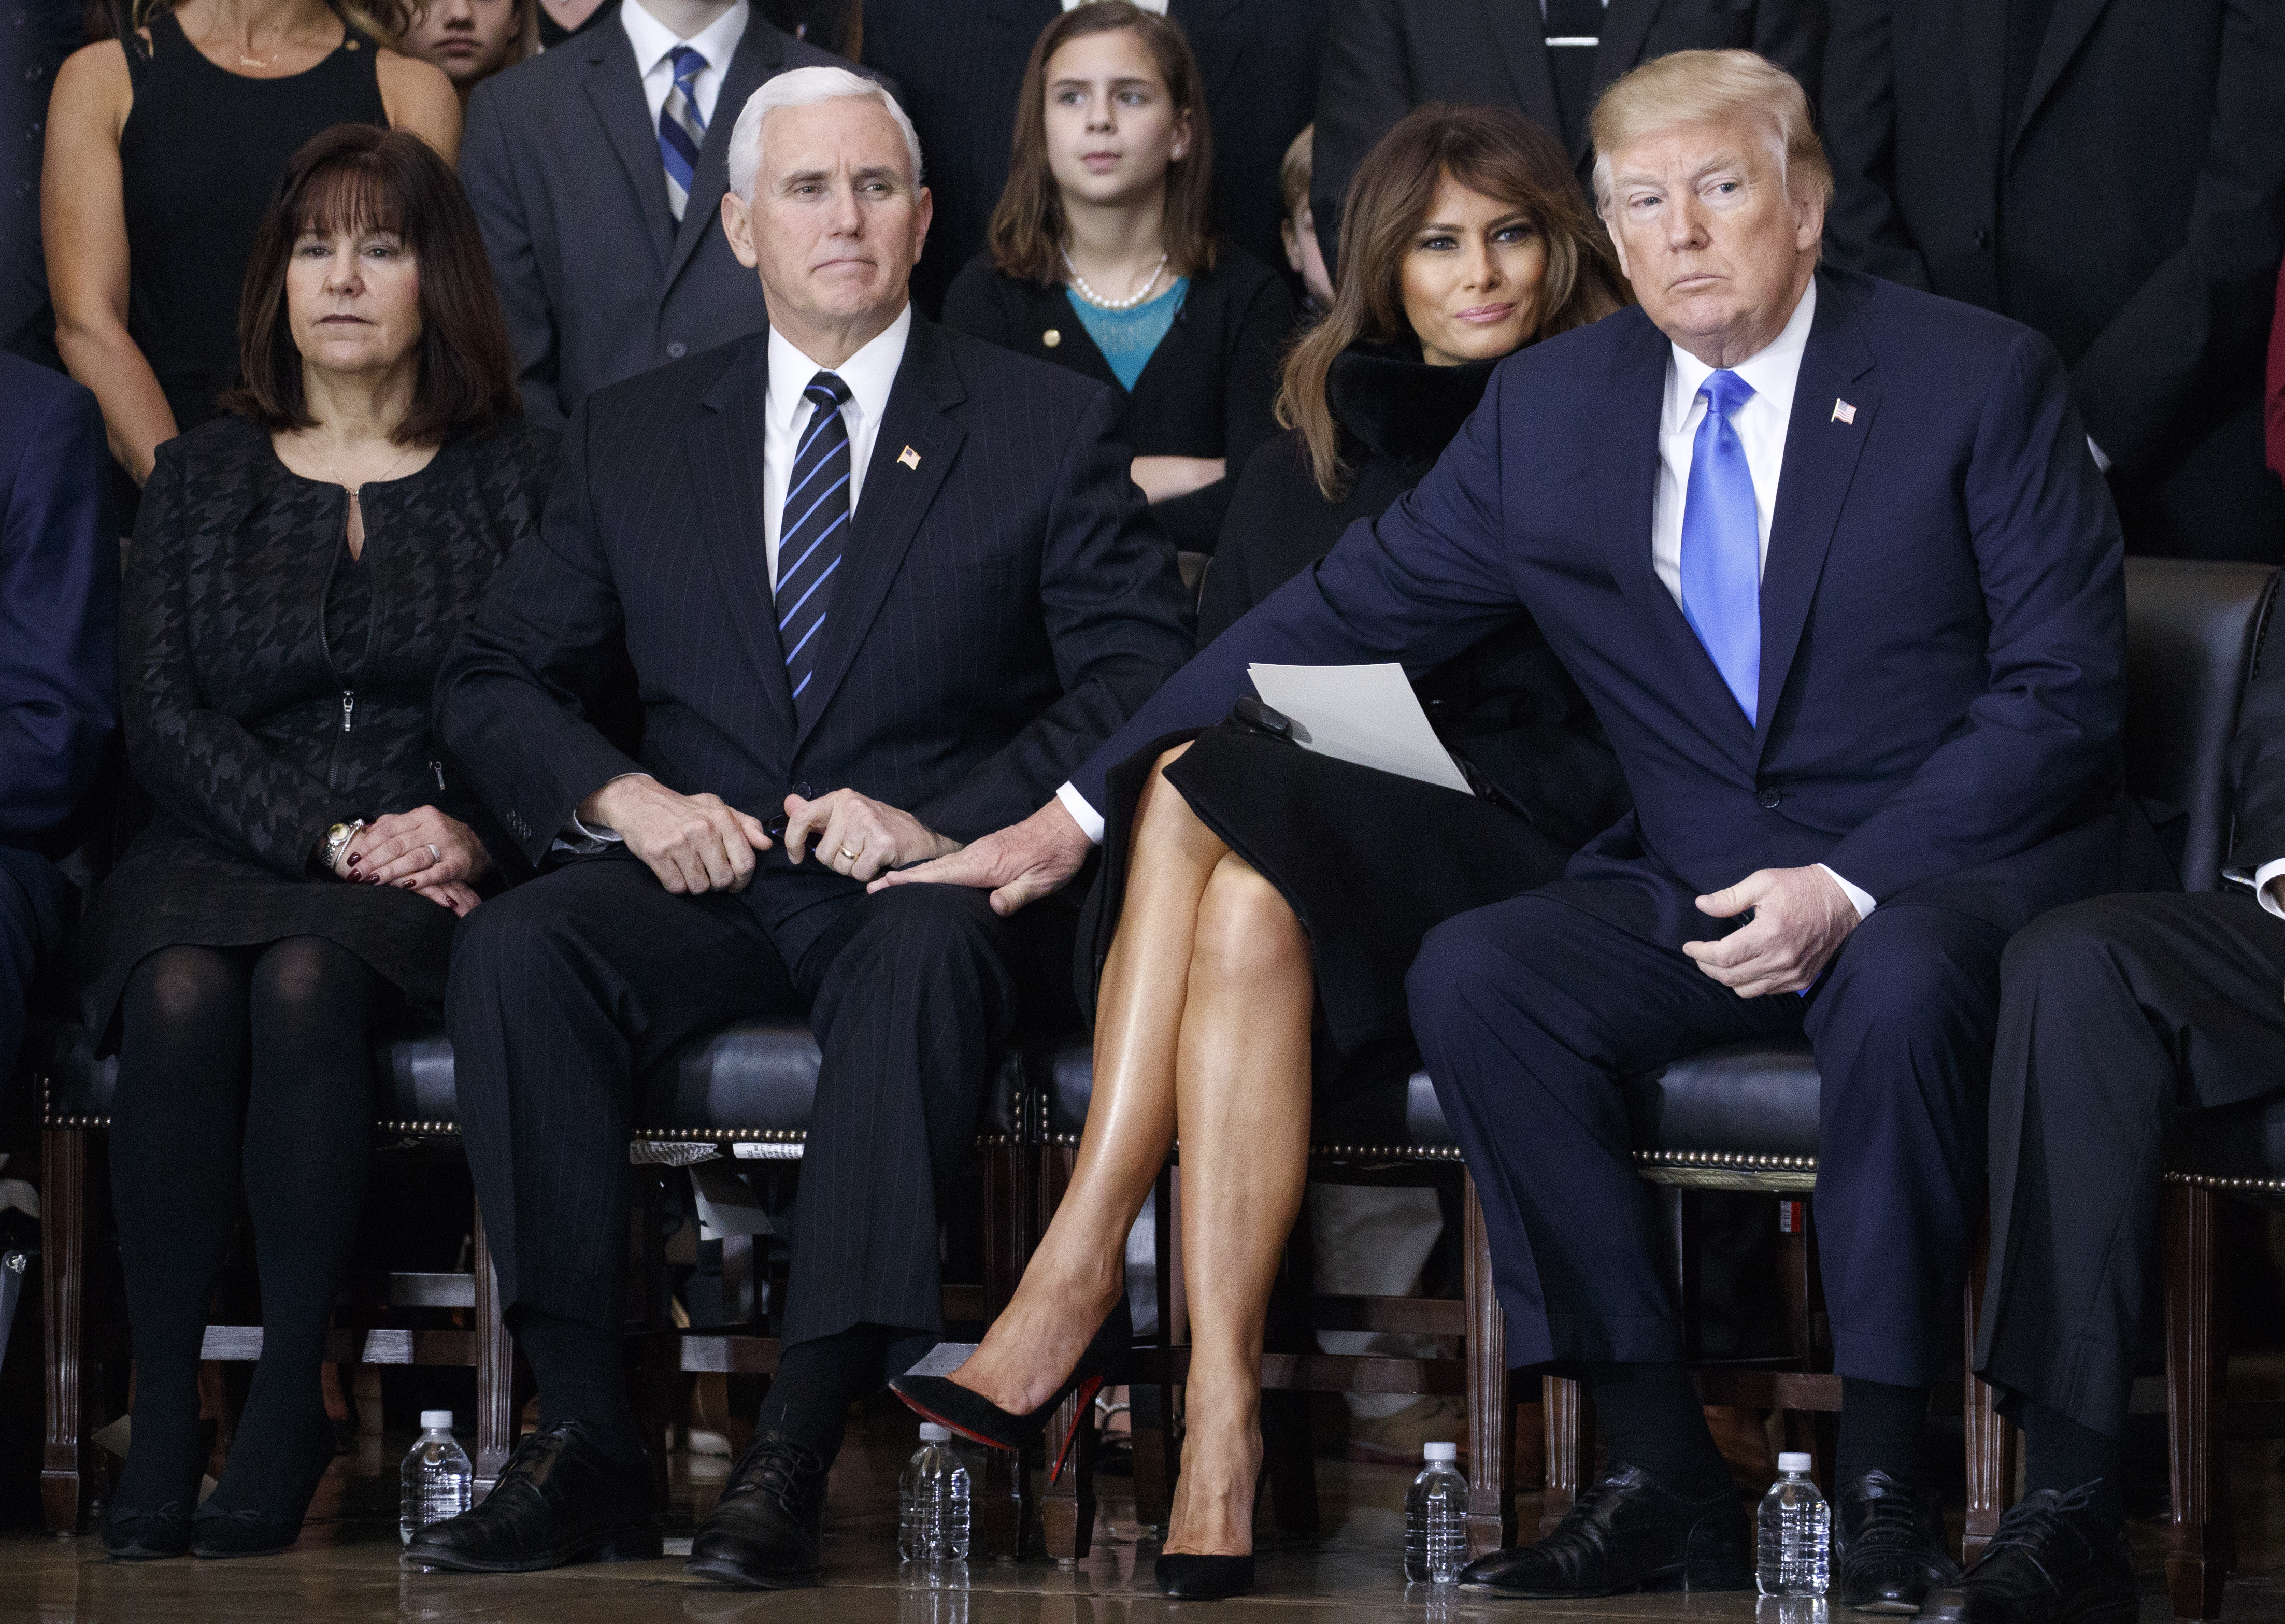 (AFP-OUT) (L-R) Second lady Karen Pence, U.S. Vice President Mike Pence, first lady Melania Trump and President Donald Trump attend the ceremonies as the late evangelist Billy Graham lies in repose at the U.S. Capitol, on February 28, 2018, in Washington, DC. Rev.